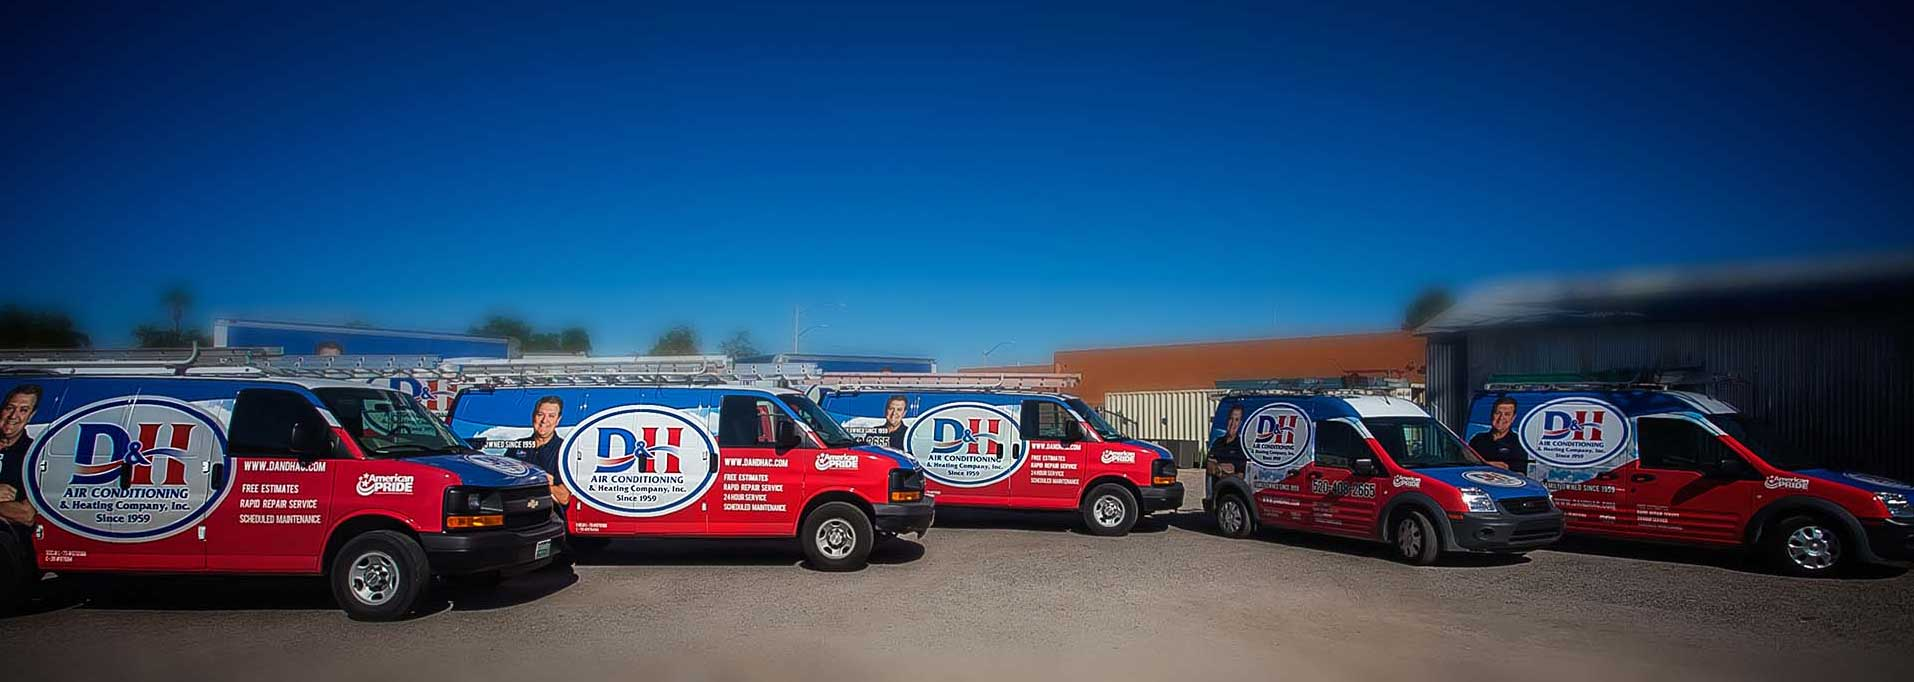 D&H AC Fleet in Oro Valley: Loaded with Parts for Air Conditioning Repair Services